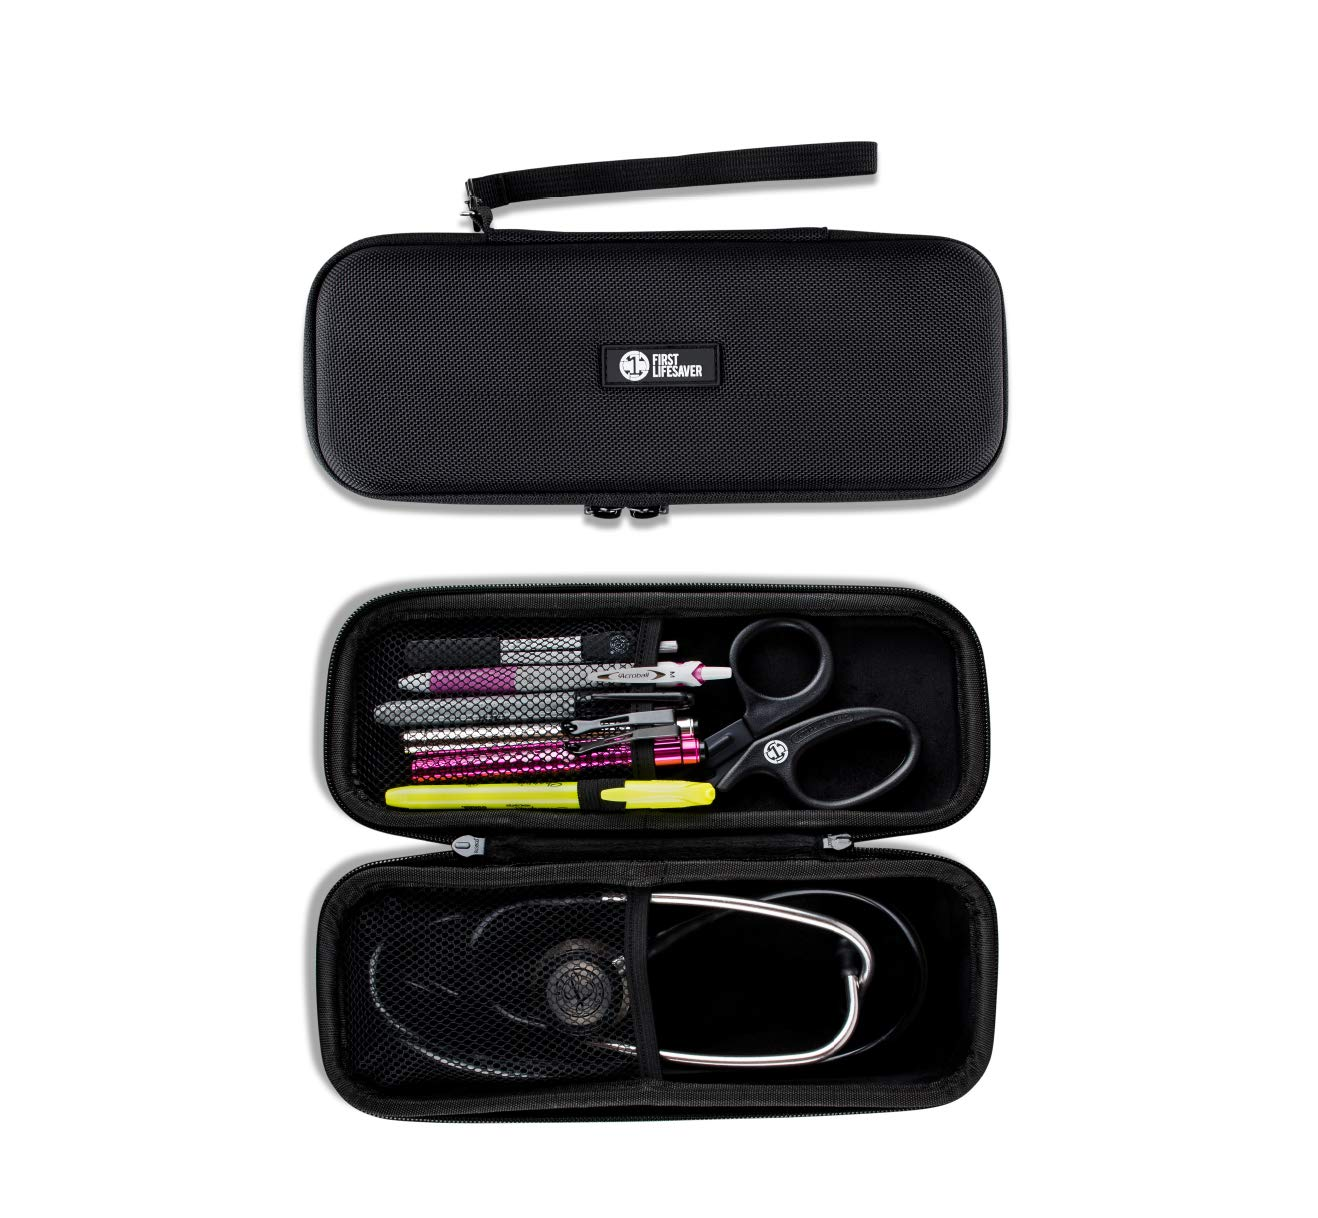 First Lifesaver Stethoscope Case with Interior Mesh Pockets and Penlight Holder by First Lifesaver